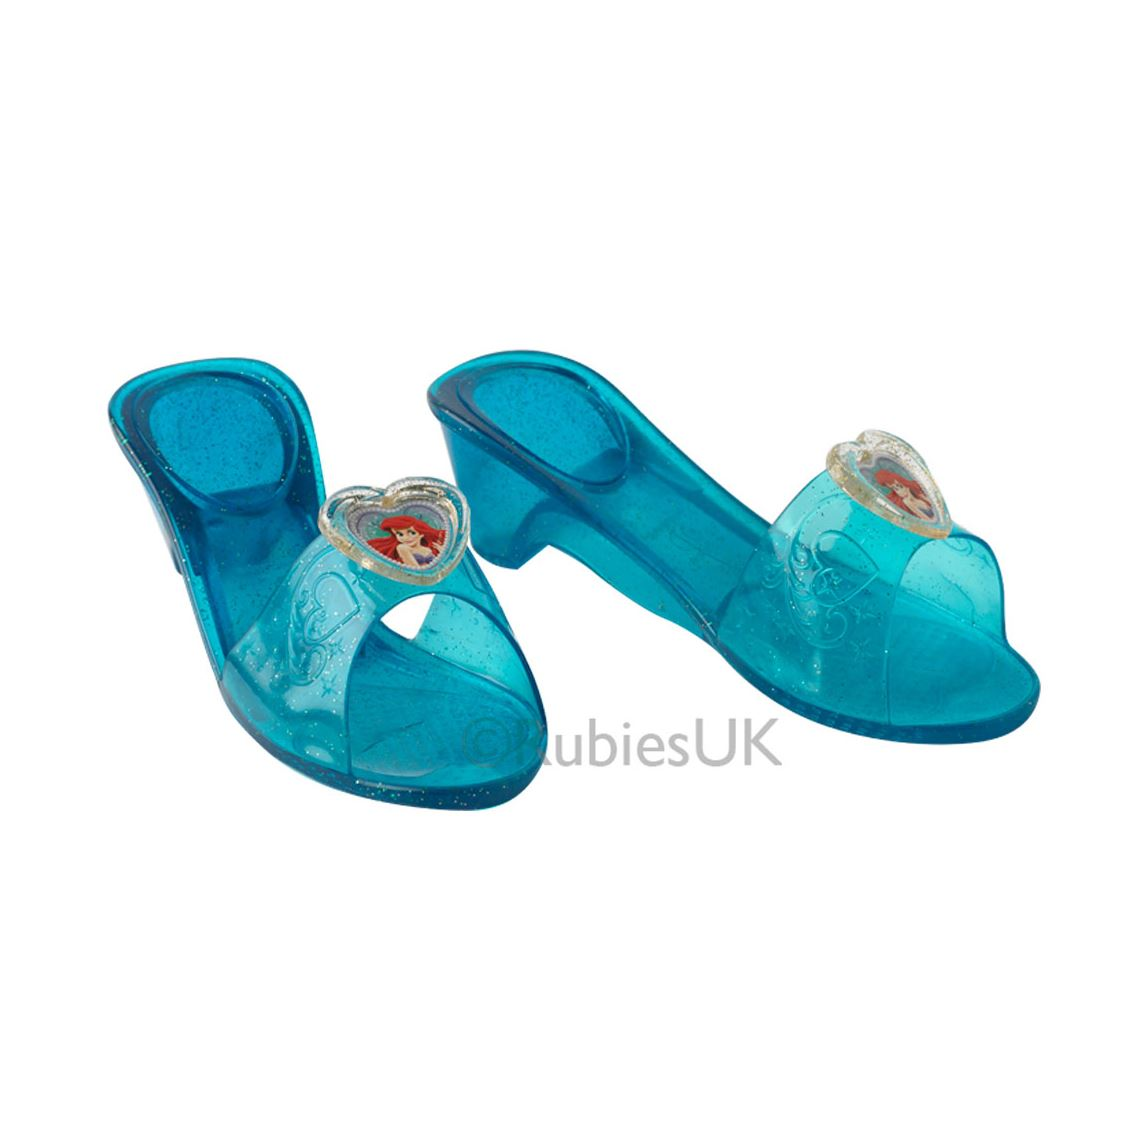 disney princess jelly shoes fancy dress costume